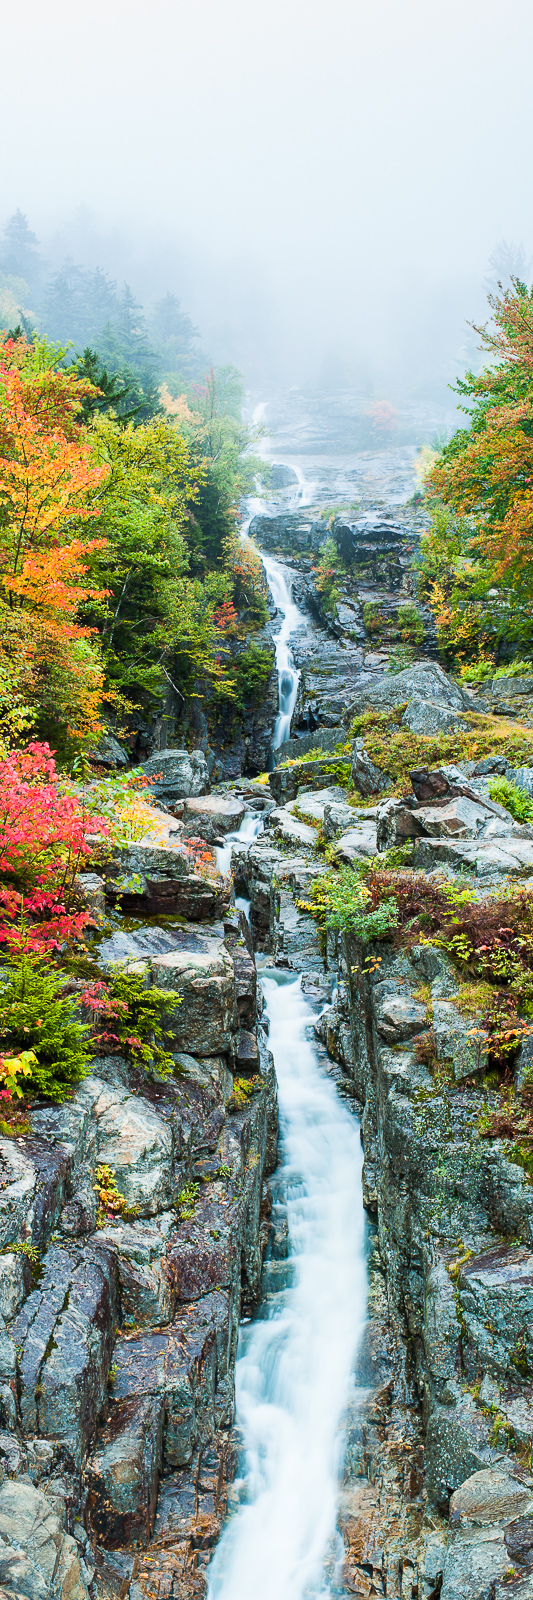 Autumn,Crawford Notch,Silver Cascades